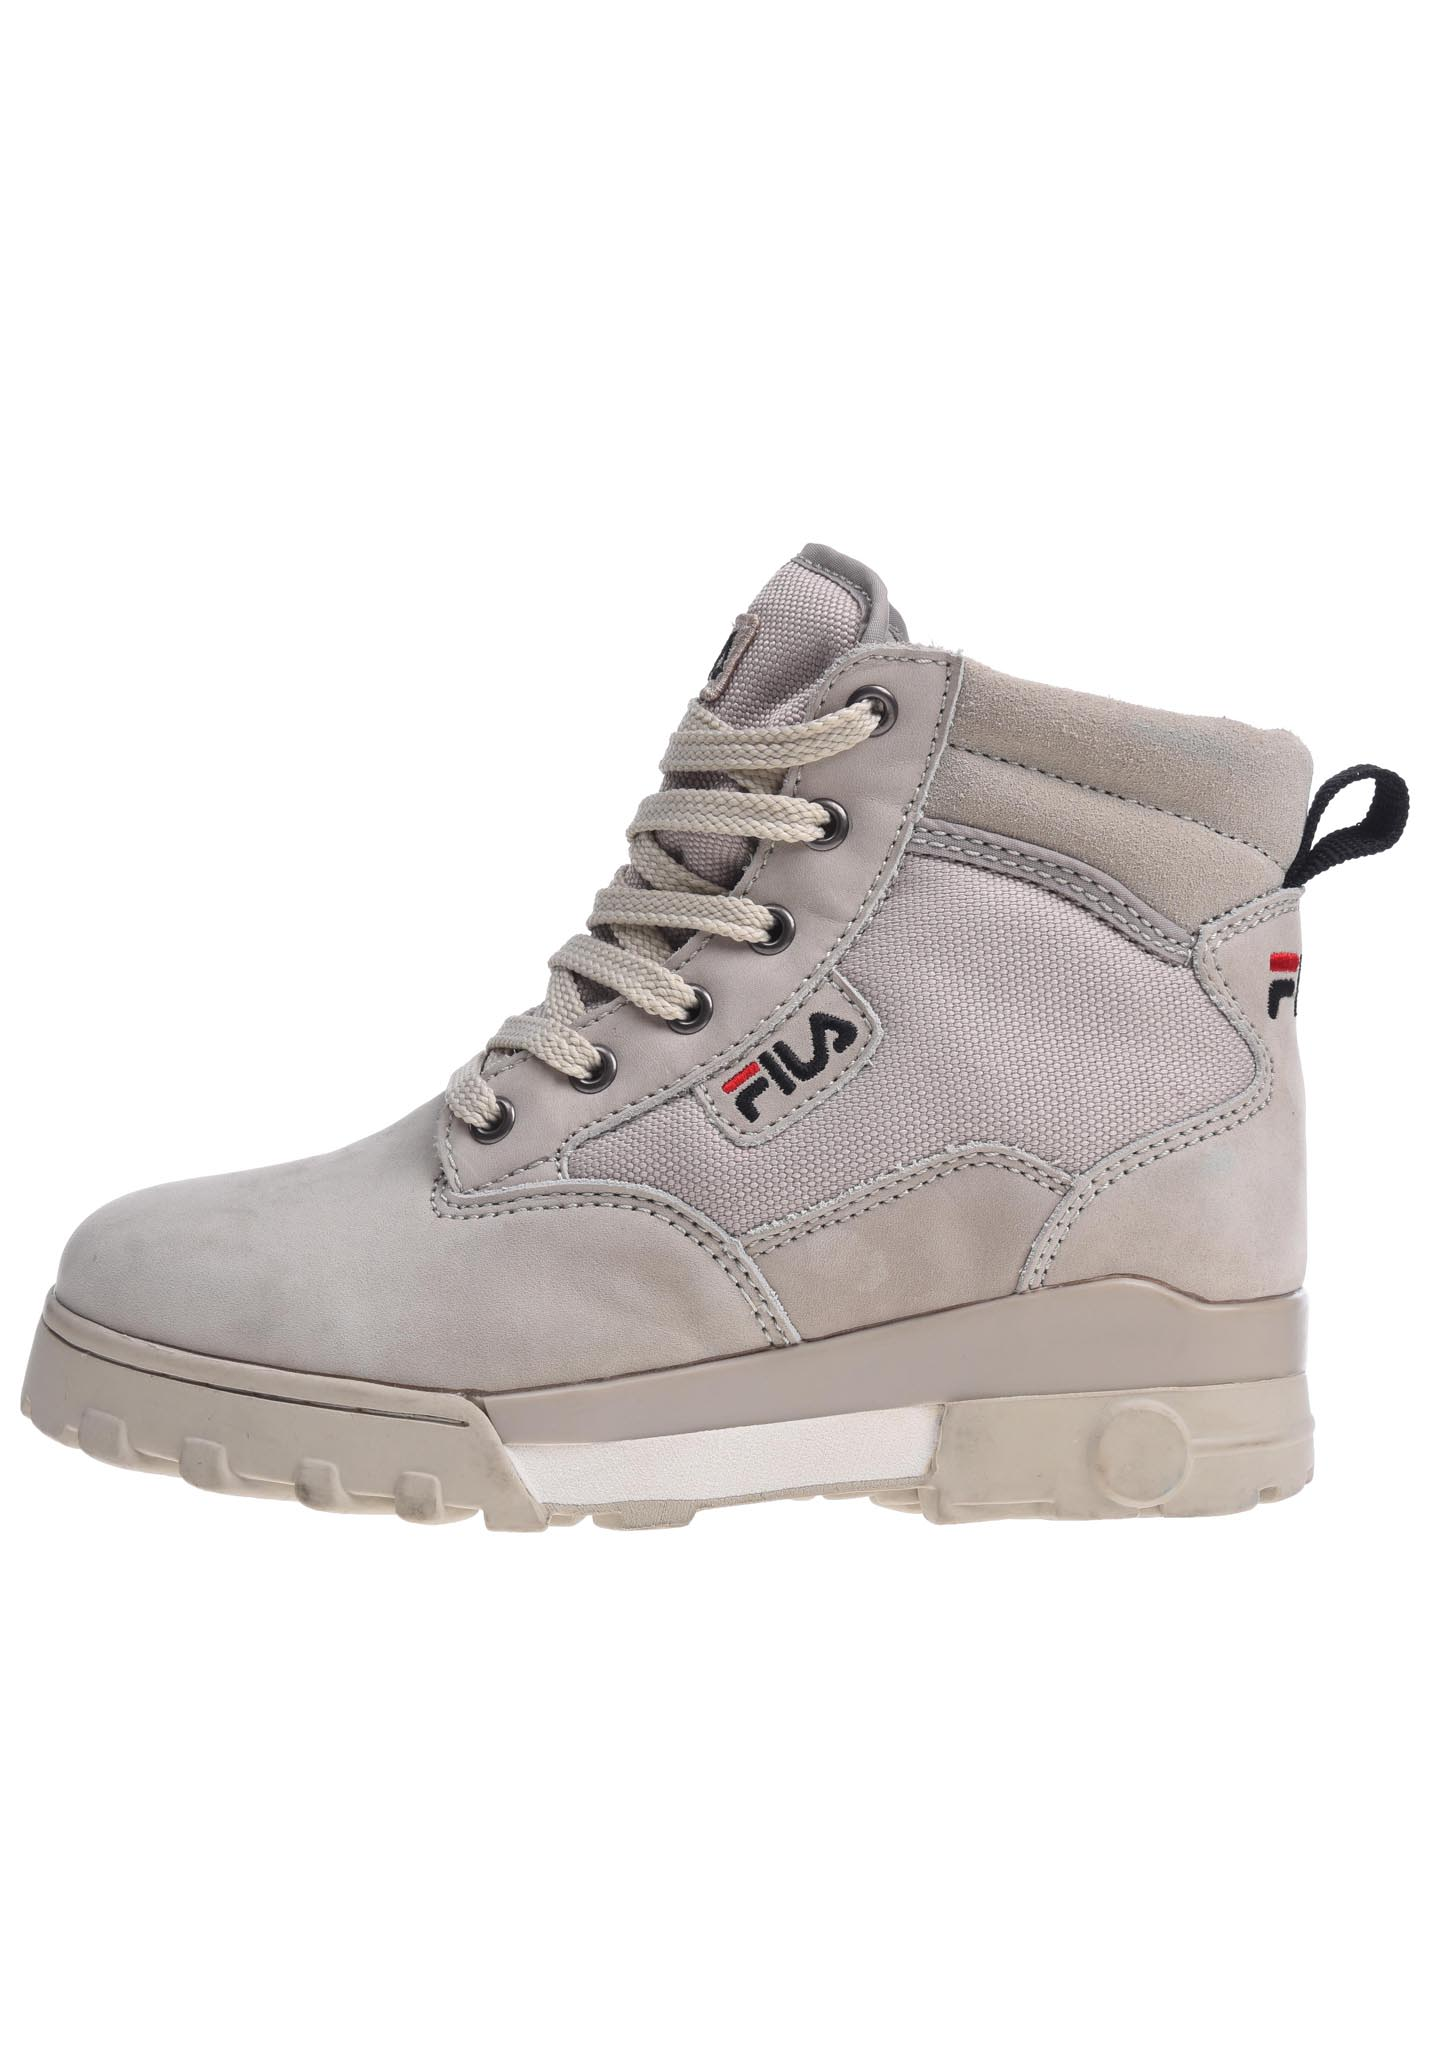 02240d3e57d Fila Heritage Grunge MID - Fashion Shoes for Women - Grey